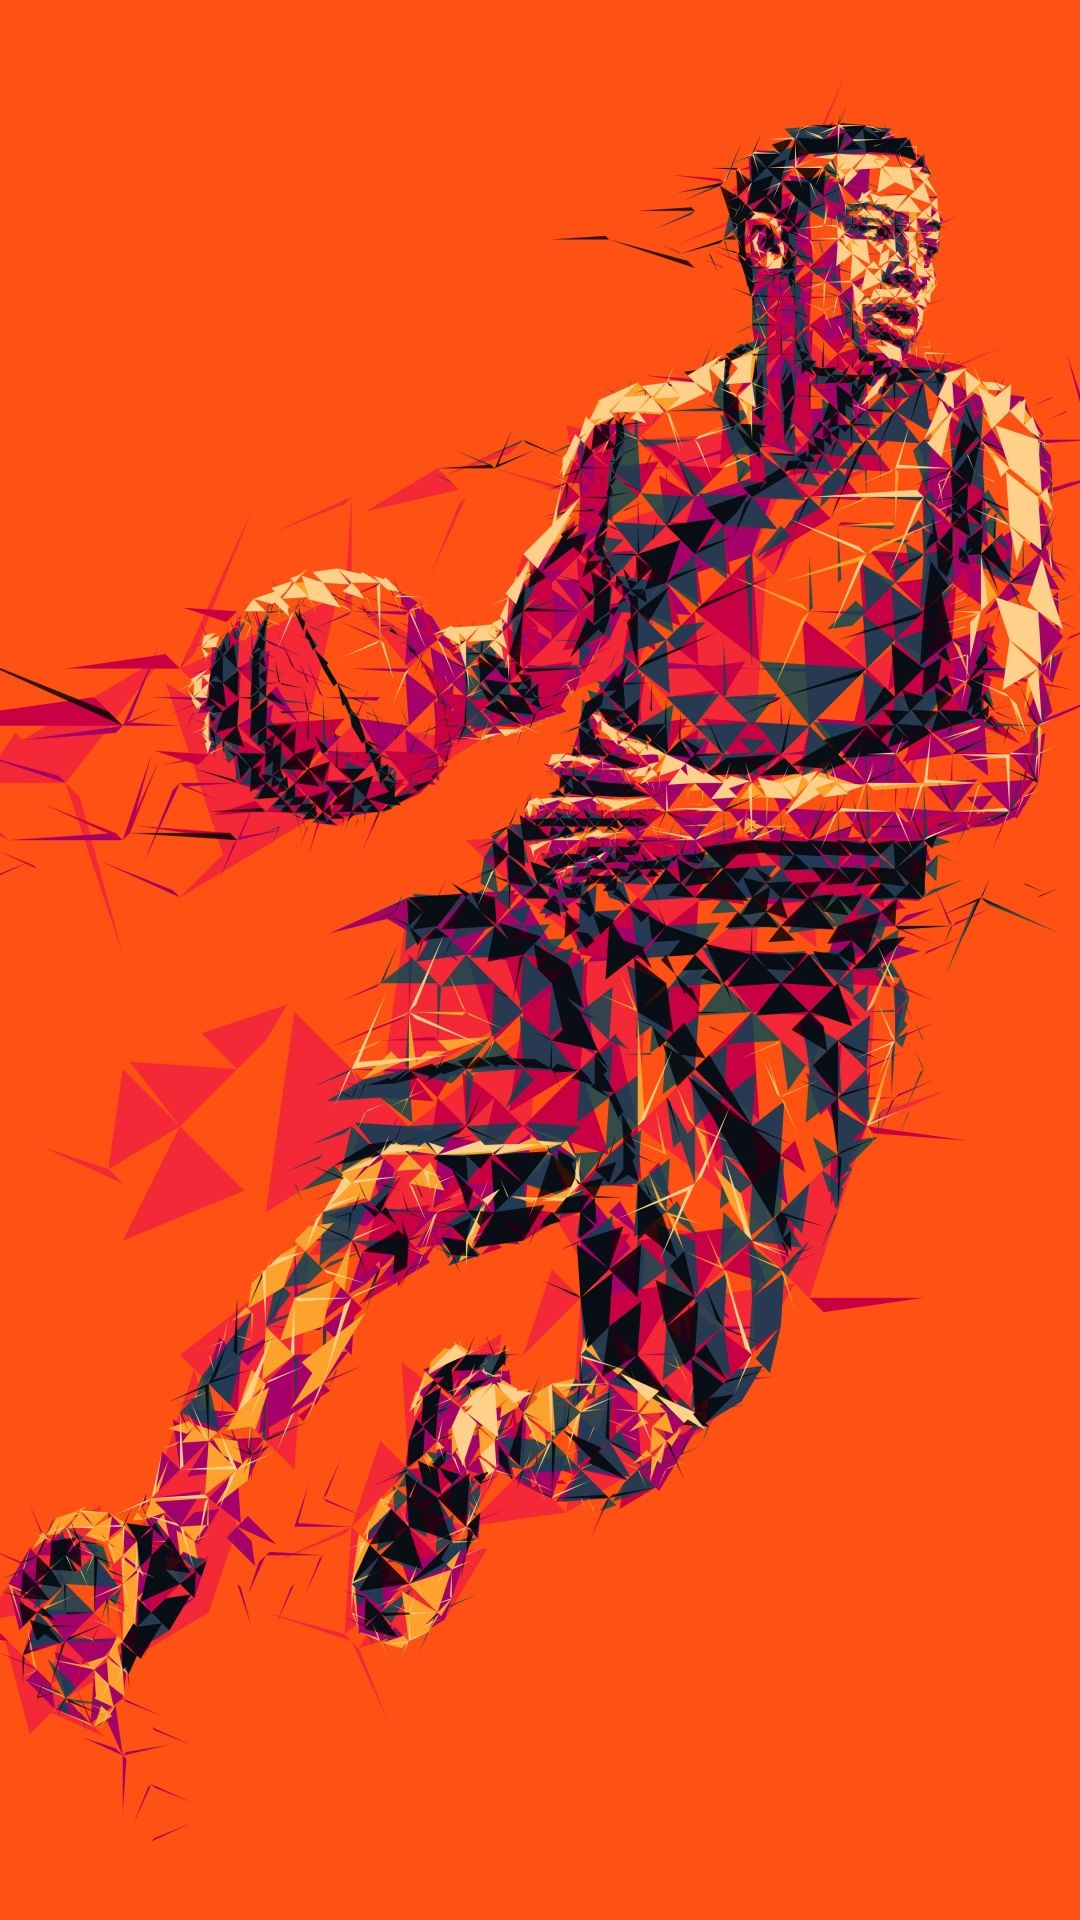 Basketball Iphone Wallpapers Top Free Basketball Iphone Backgrounds Wallpaperaccess